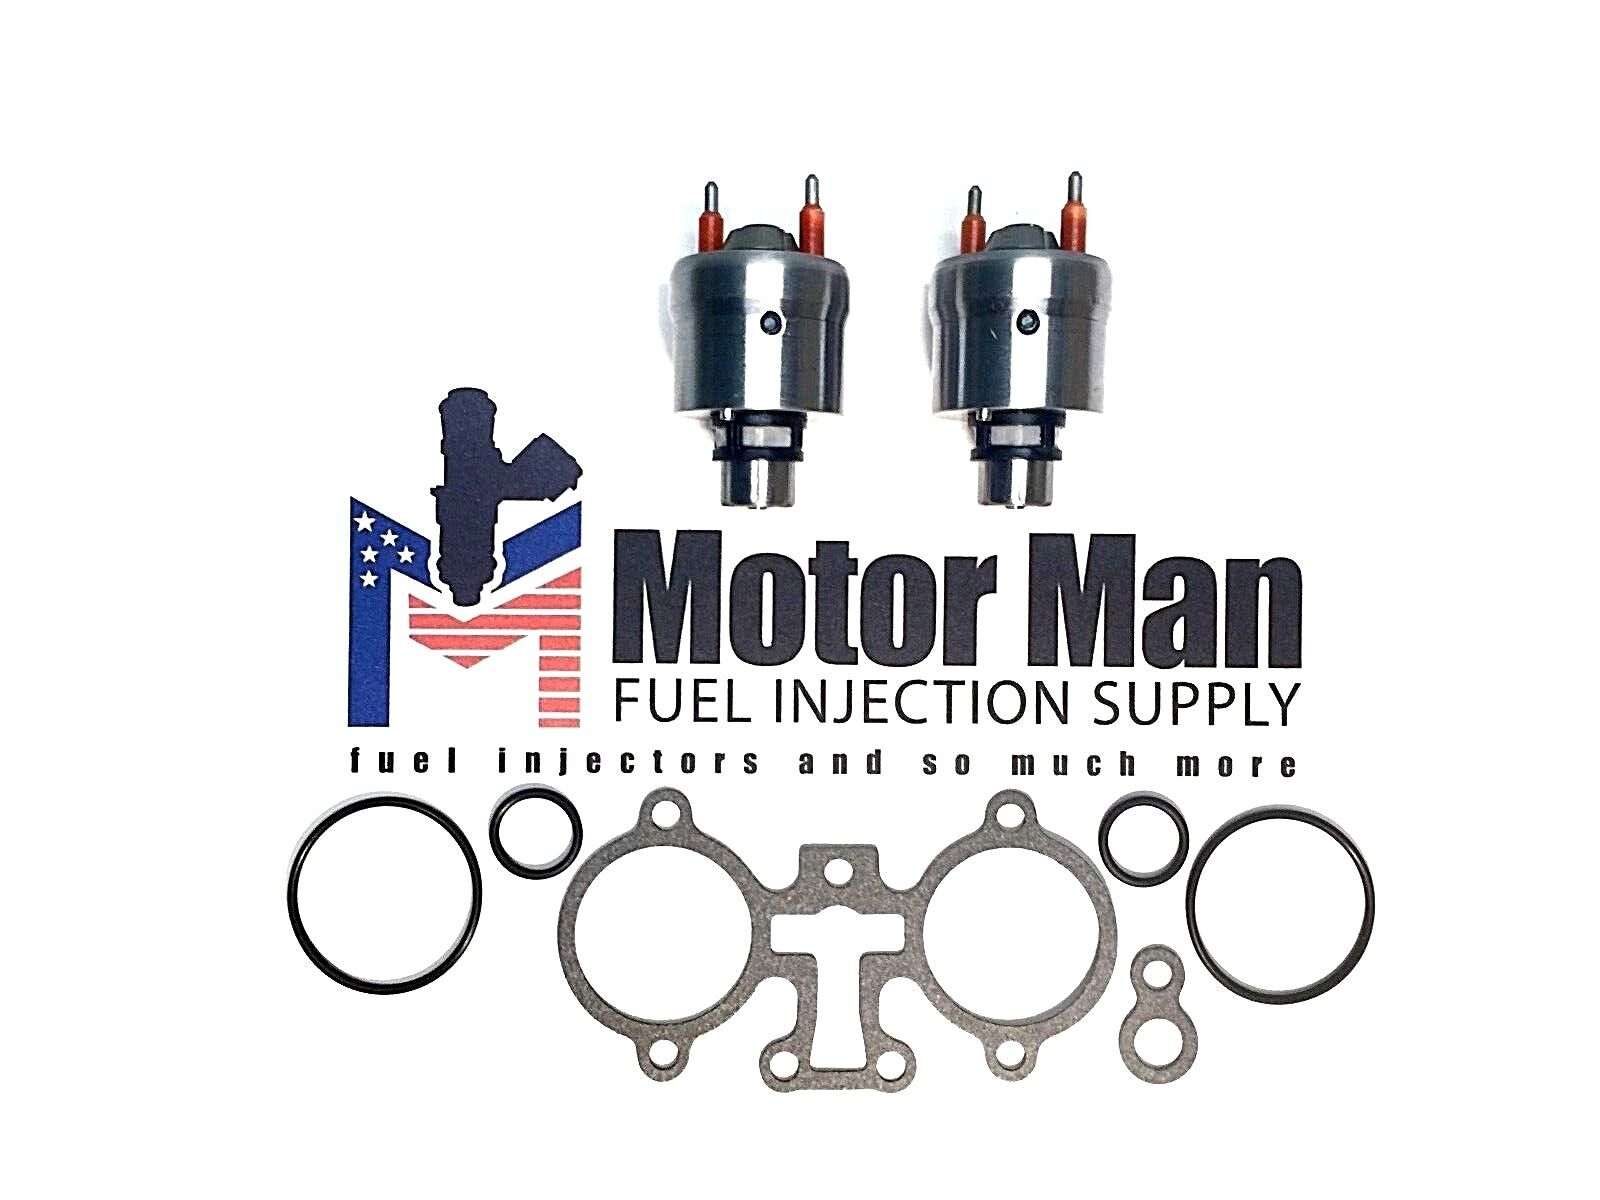 Used gmc fuel injectors for sale 5235206 tbi flow matched fuel injector set for 57 gmc chevrolet pickup van 55lb publicscrutiny Image collections